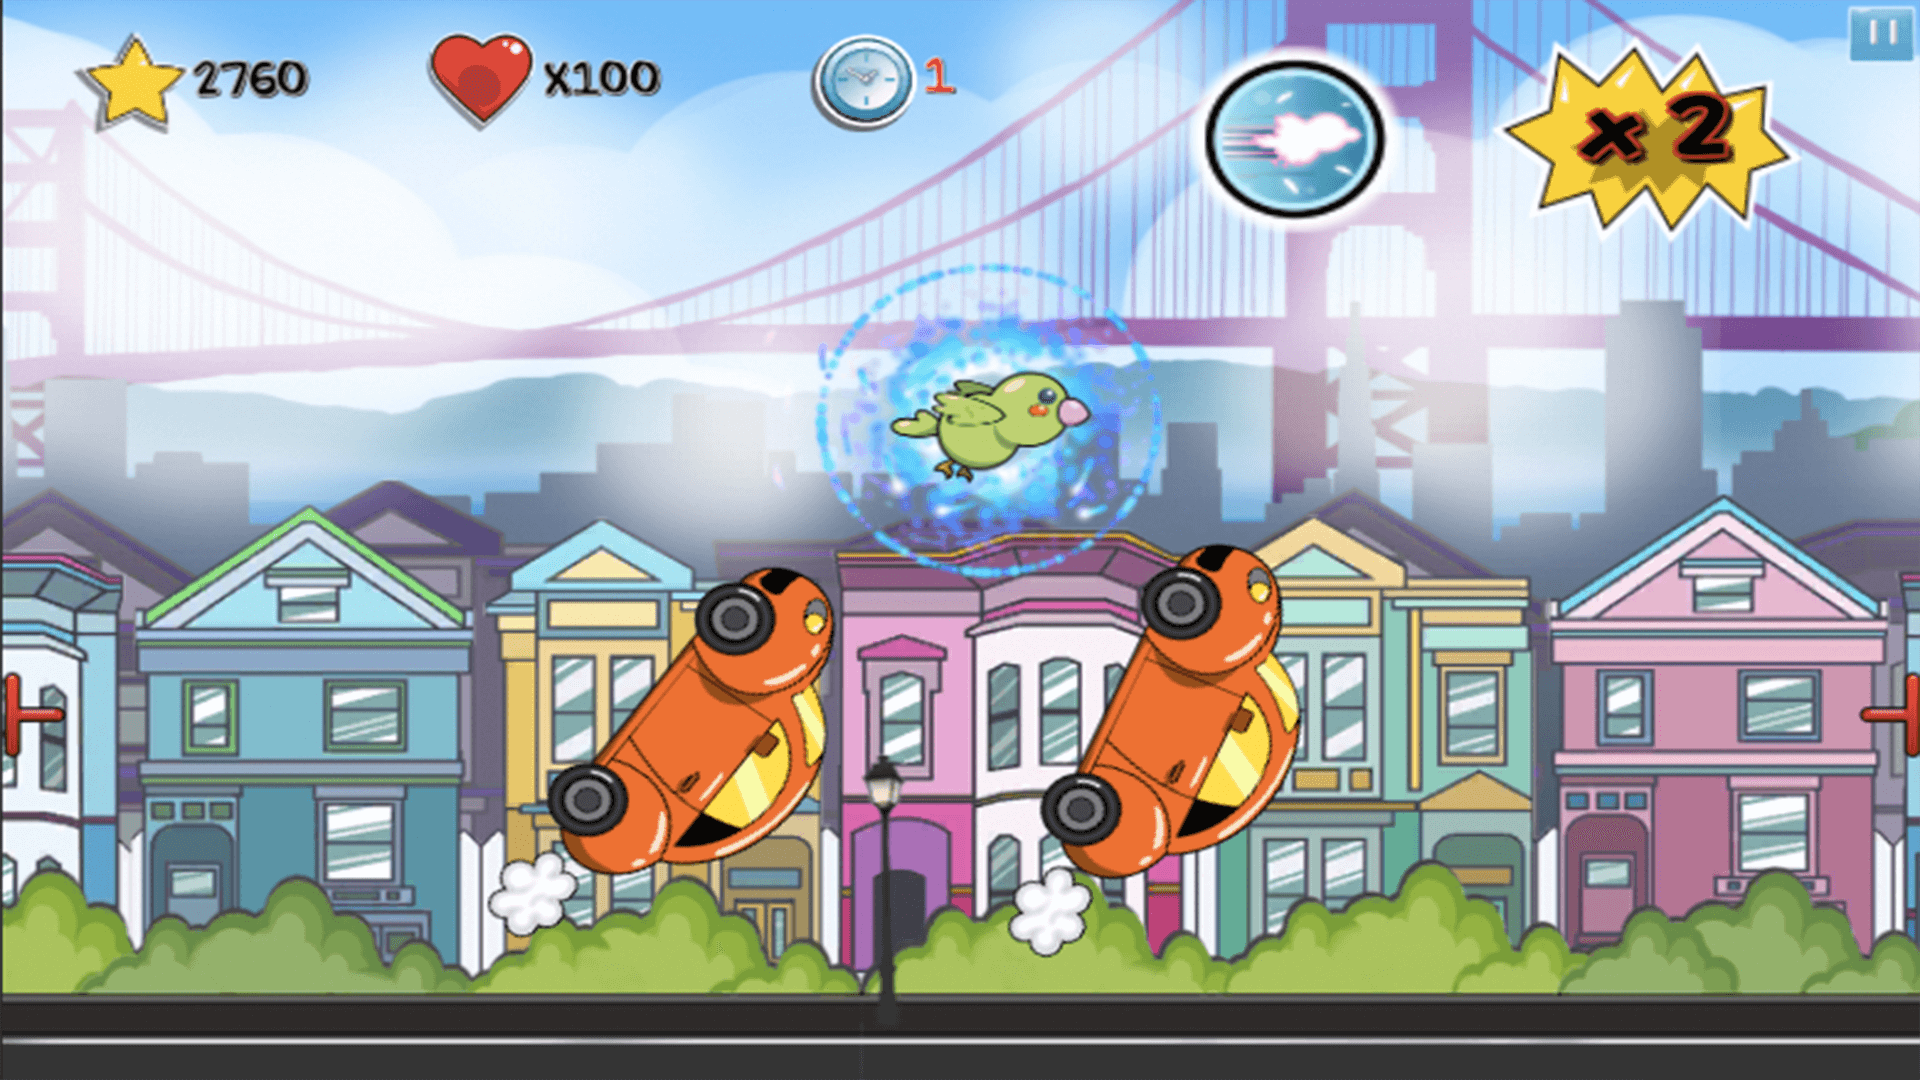 Gameplay Screen 1